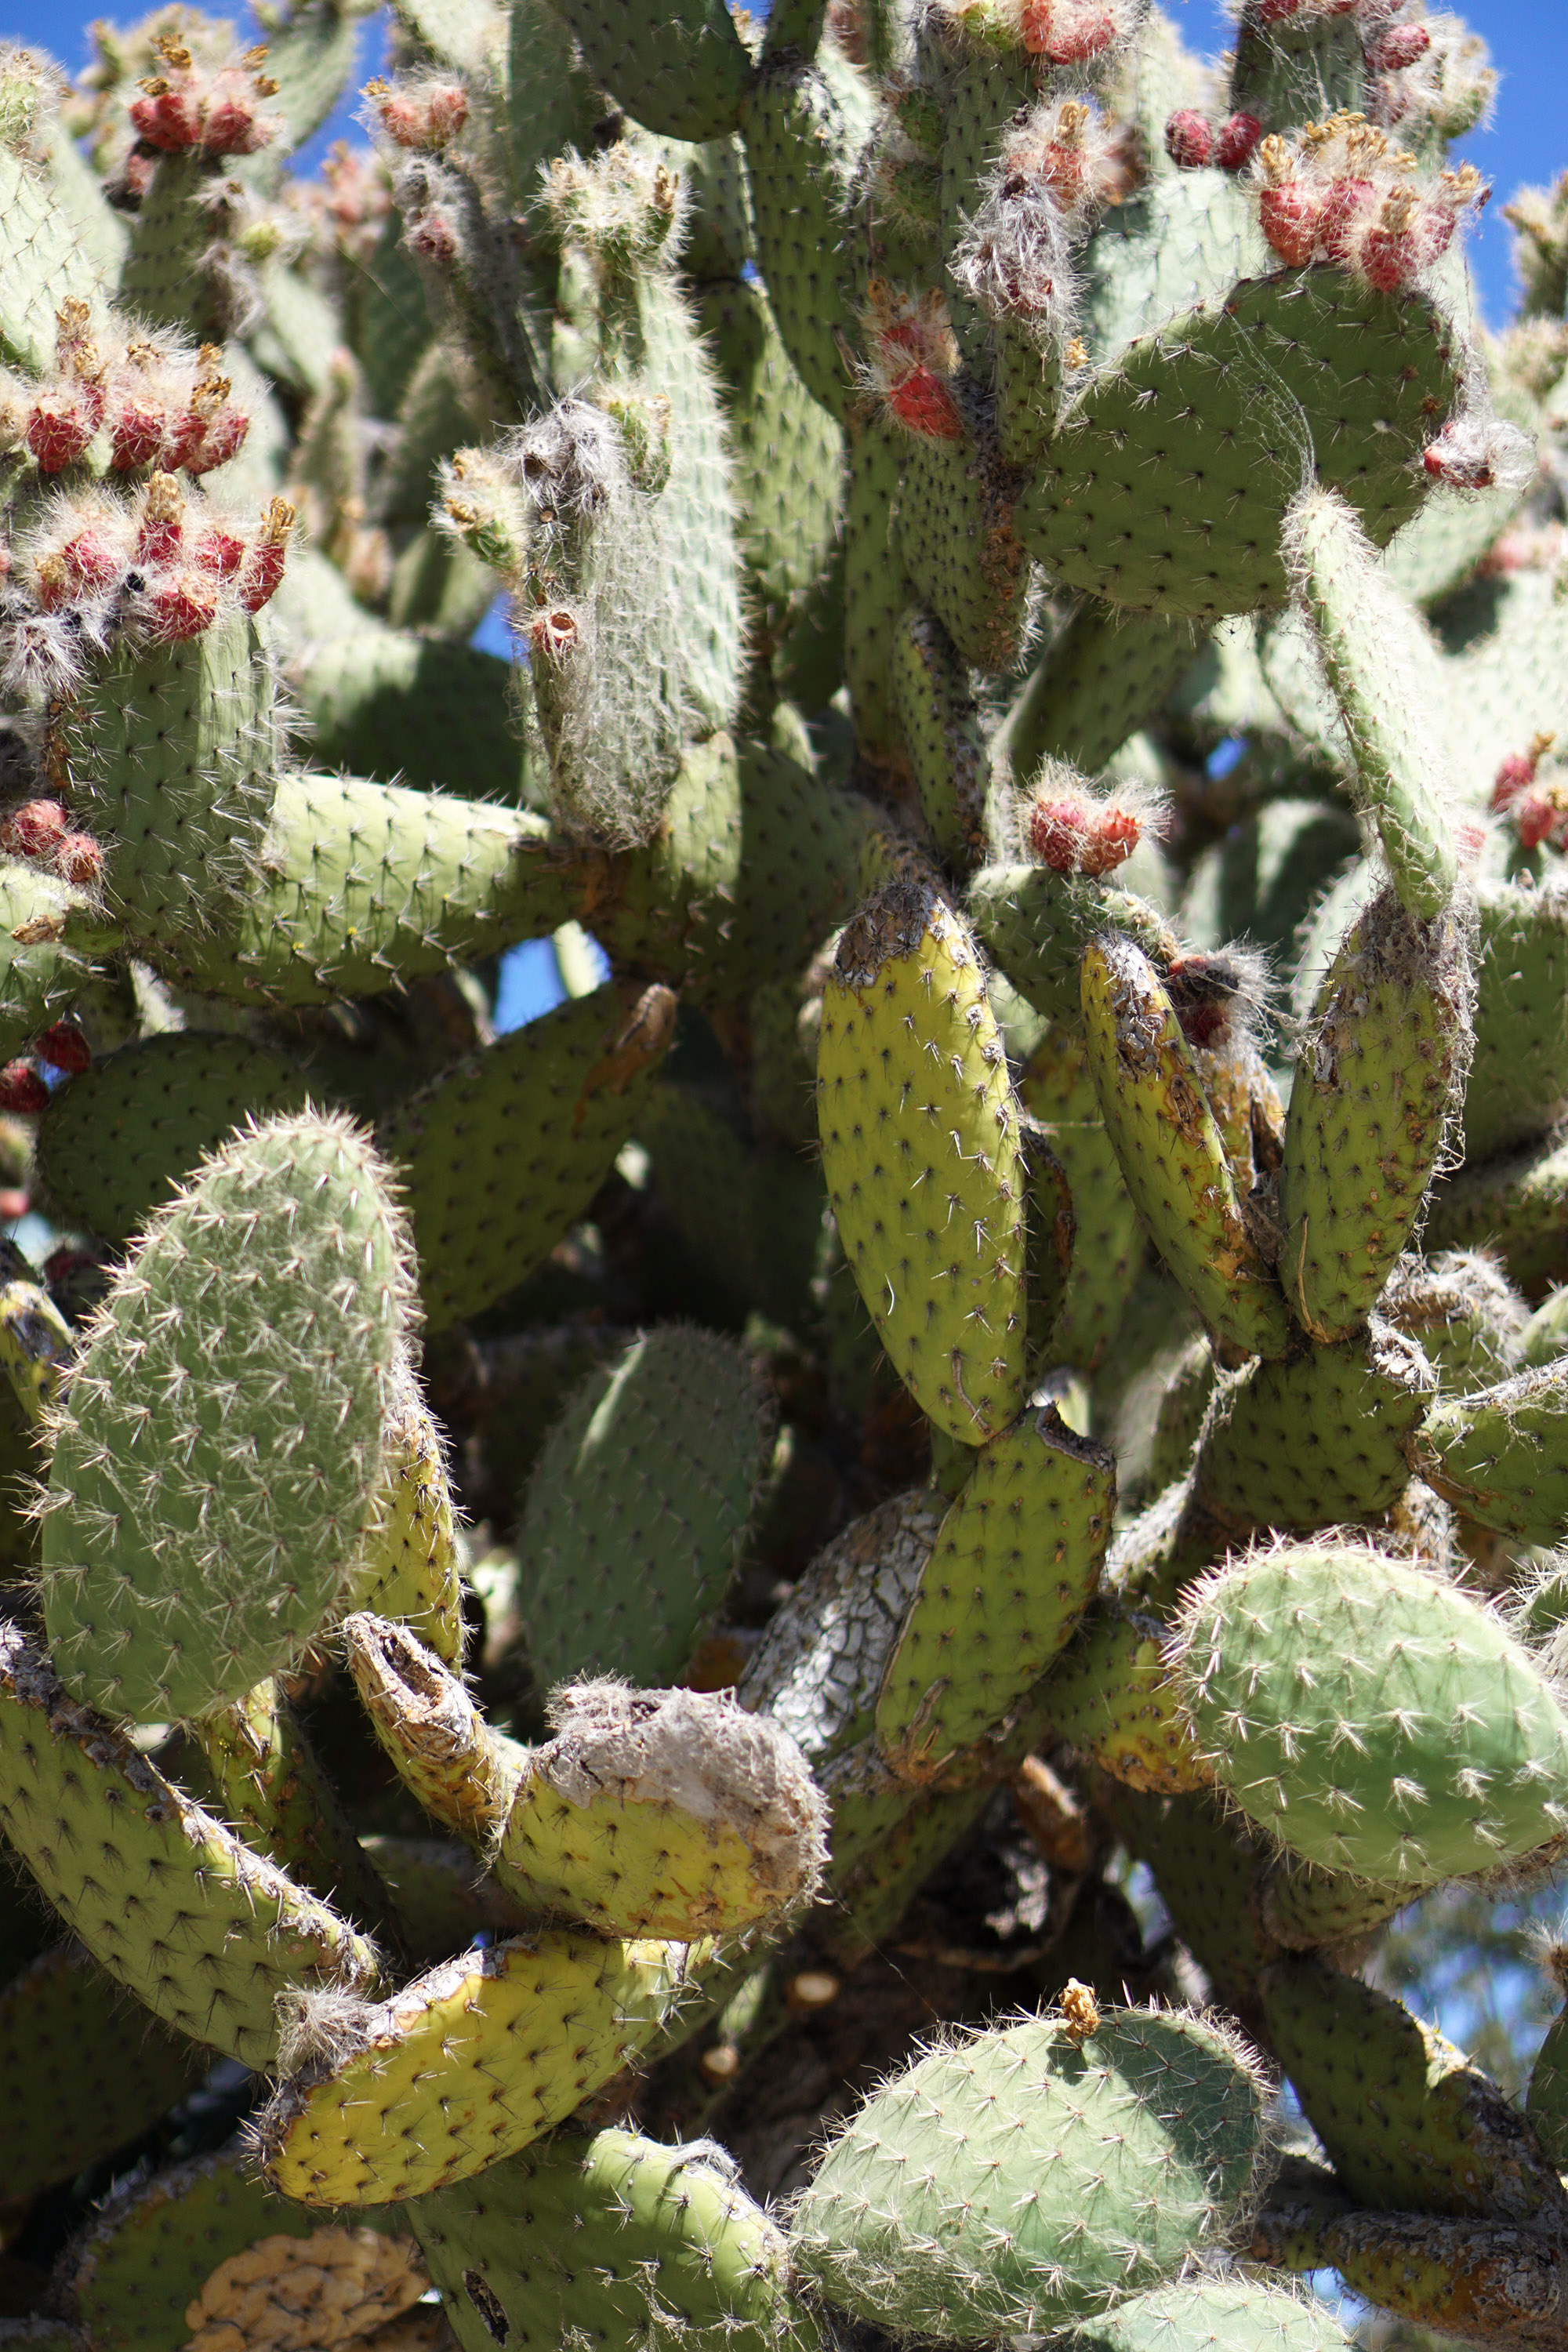 Cacti at The Gardens at Lake Merritt, Oakland California / Darker than Green